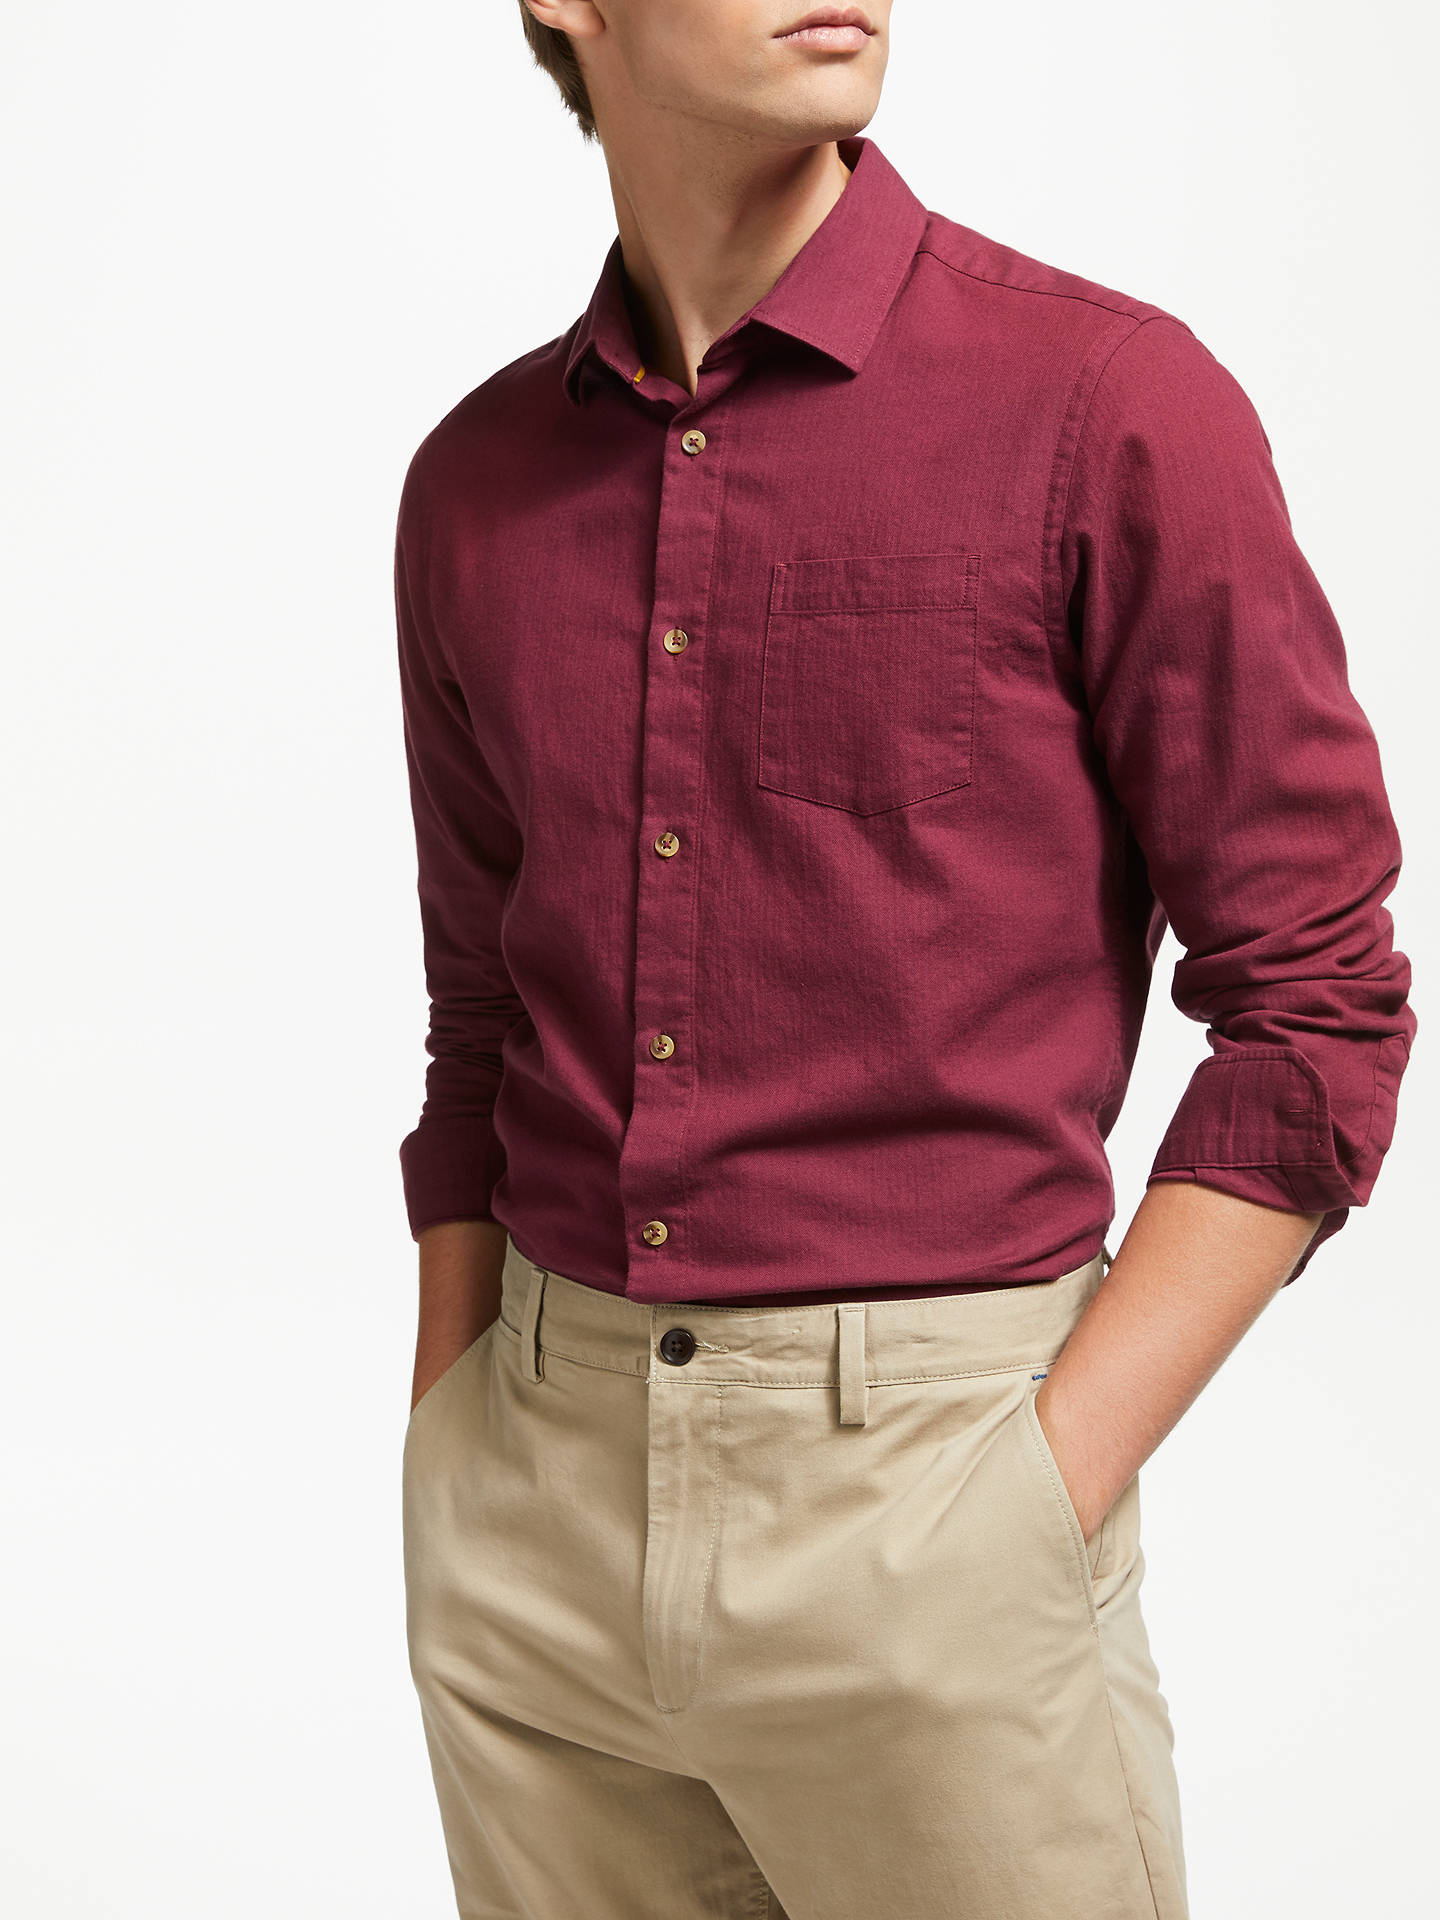 BuyJohn Lewis & Partners Elton Brushed Herringbone Shirt, Wine, S Online at johnlewis.com